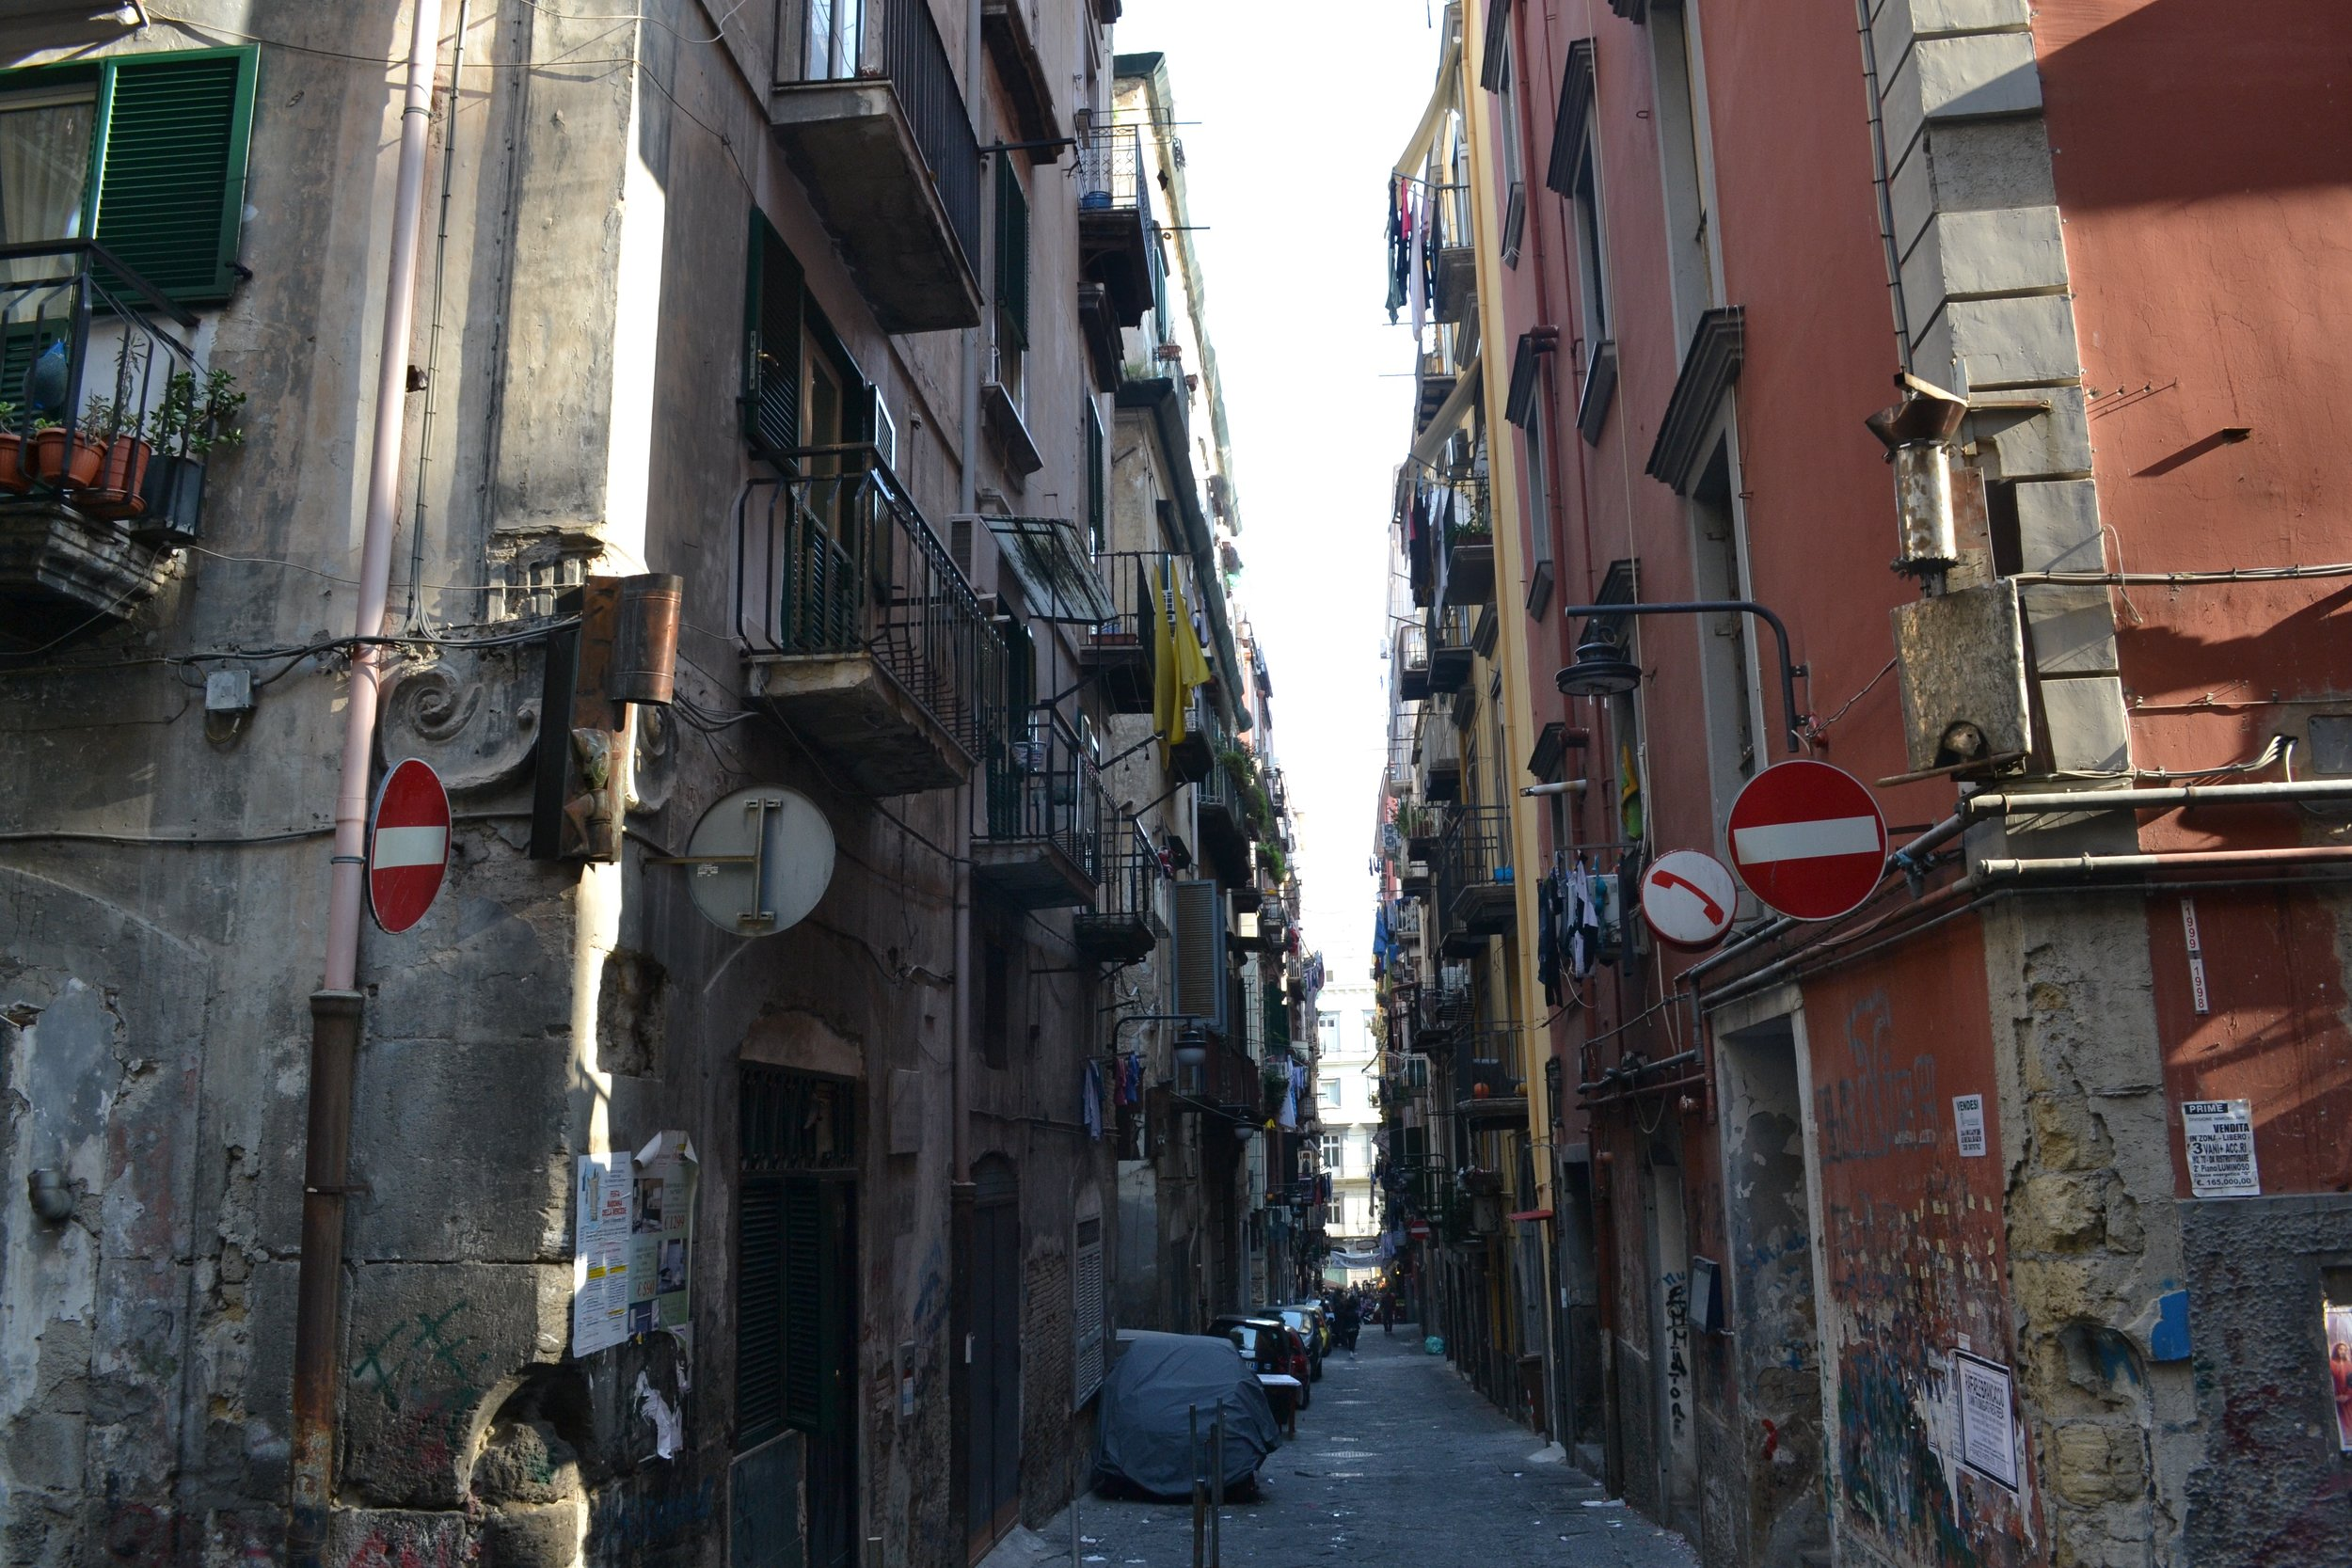 The famous grittiness of Naples is evident in the Spanish Quarter of the city